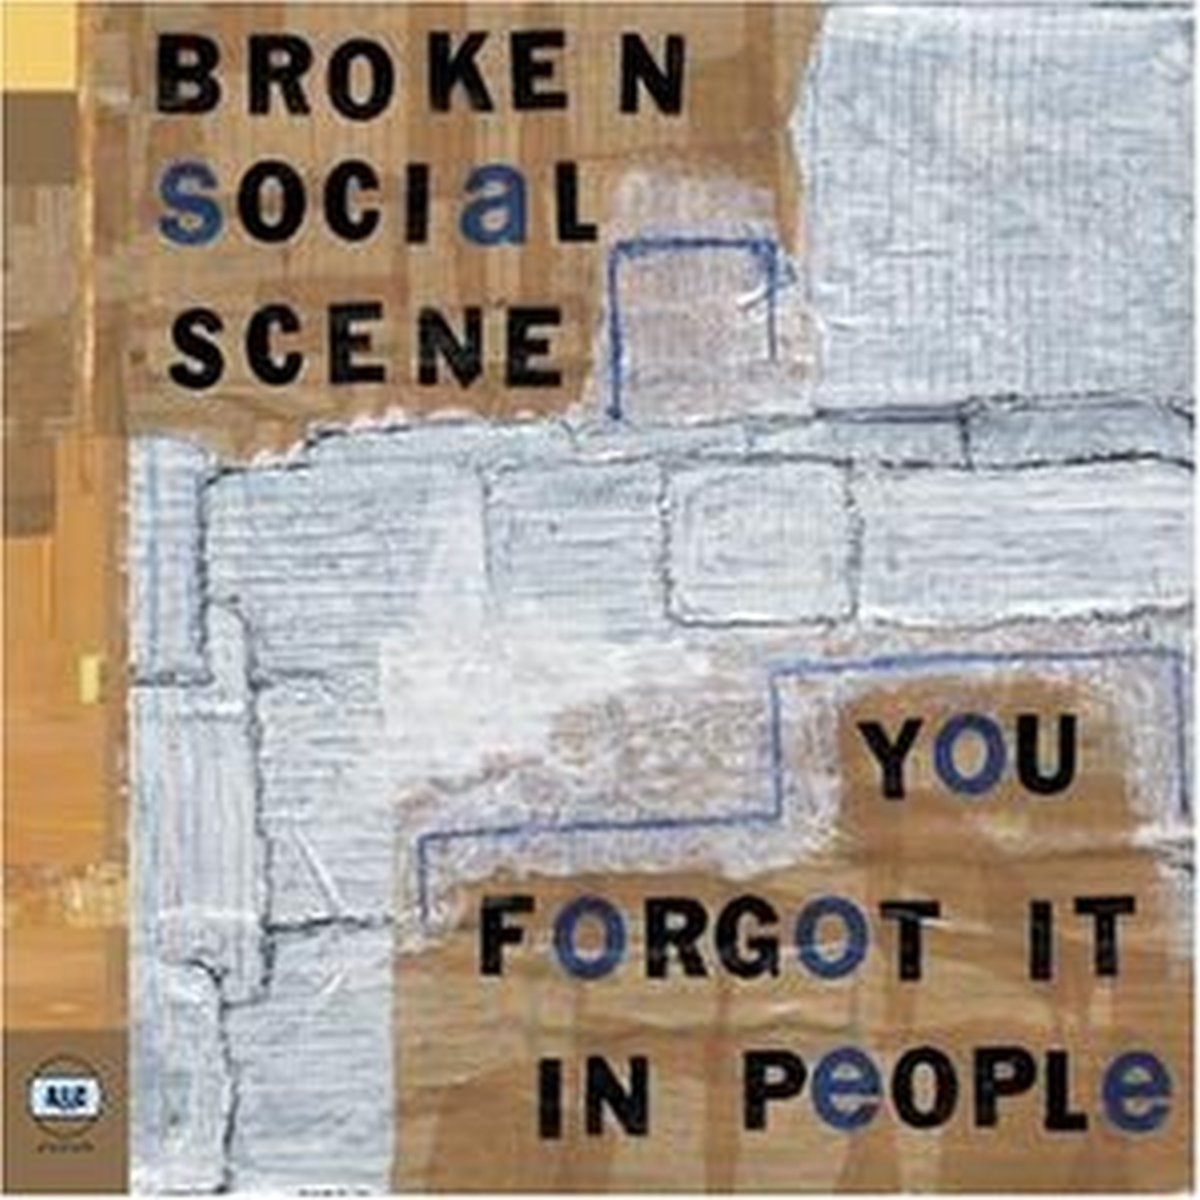 You Forgot It in People [Vinyl] by Craft Recordings